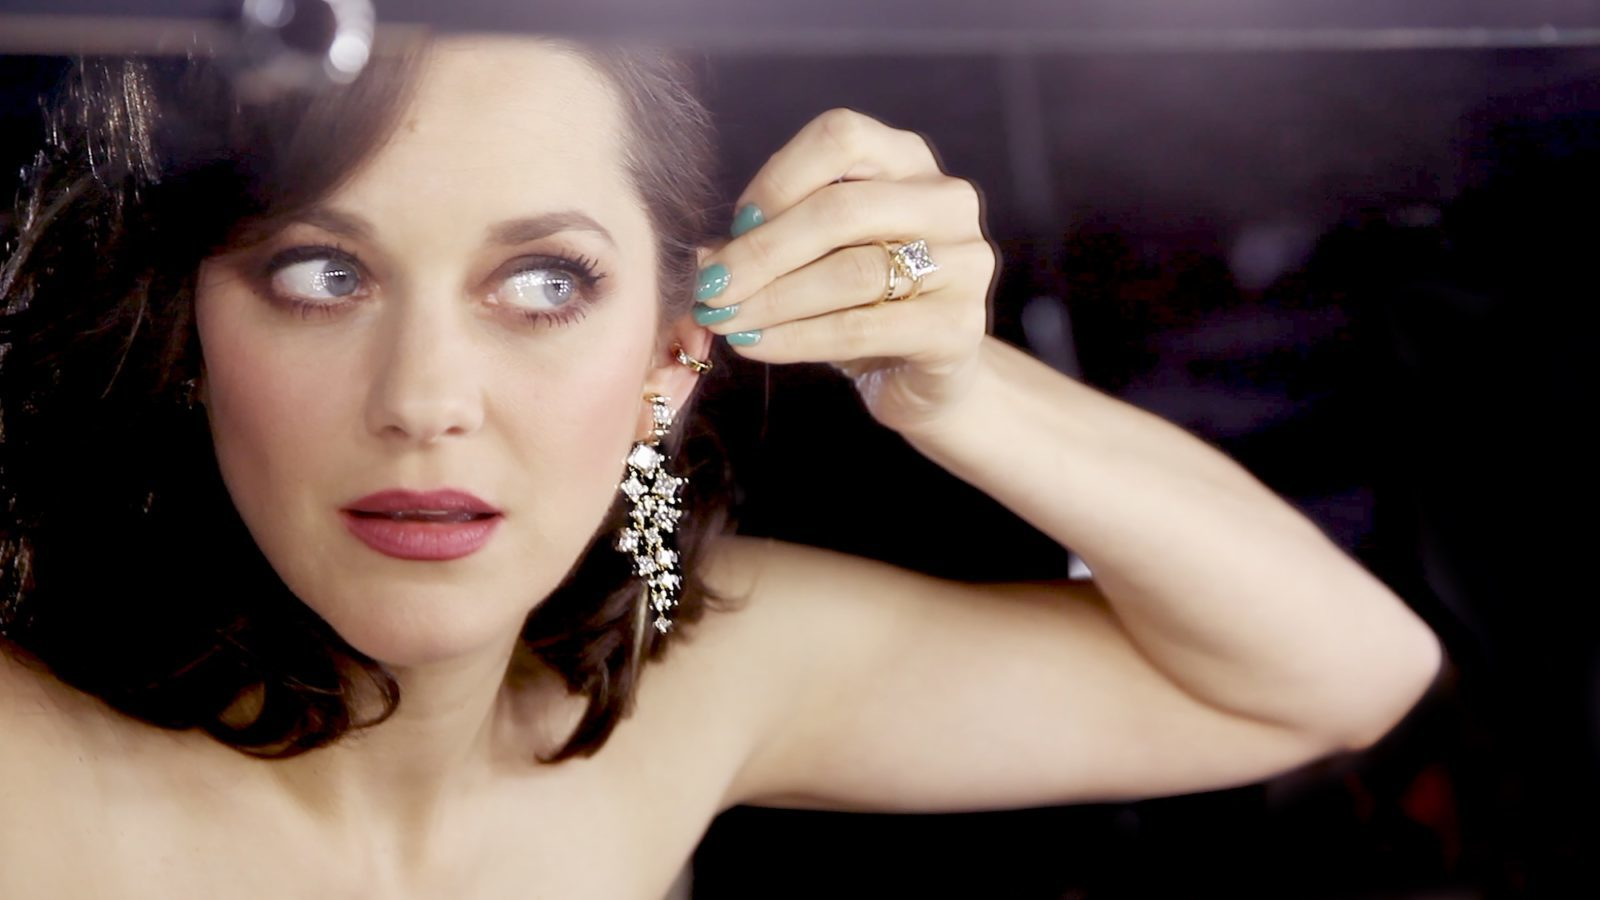 Marion Cotillard designs Chopard's latest ethical jewellery pieces